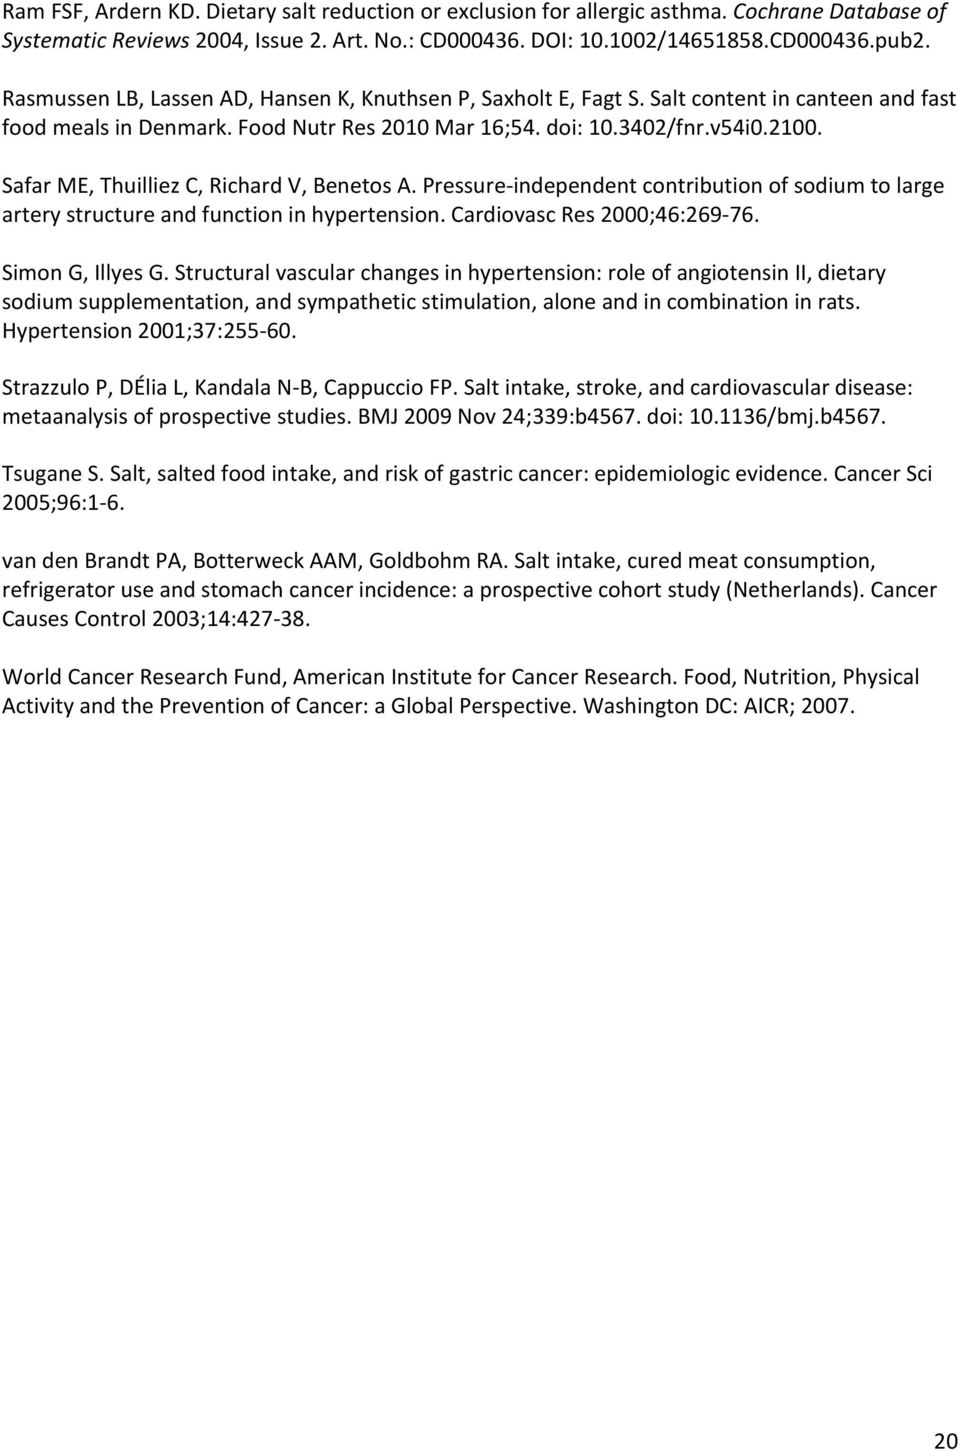 Safar ME, Thuilliez C, Richard V, Benetos A. Pressure-independent contribution of sodium to large artery structure and function in hypertension. Cardiovasc Res 2000;46:269-76. Simon G, Illyes G.